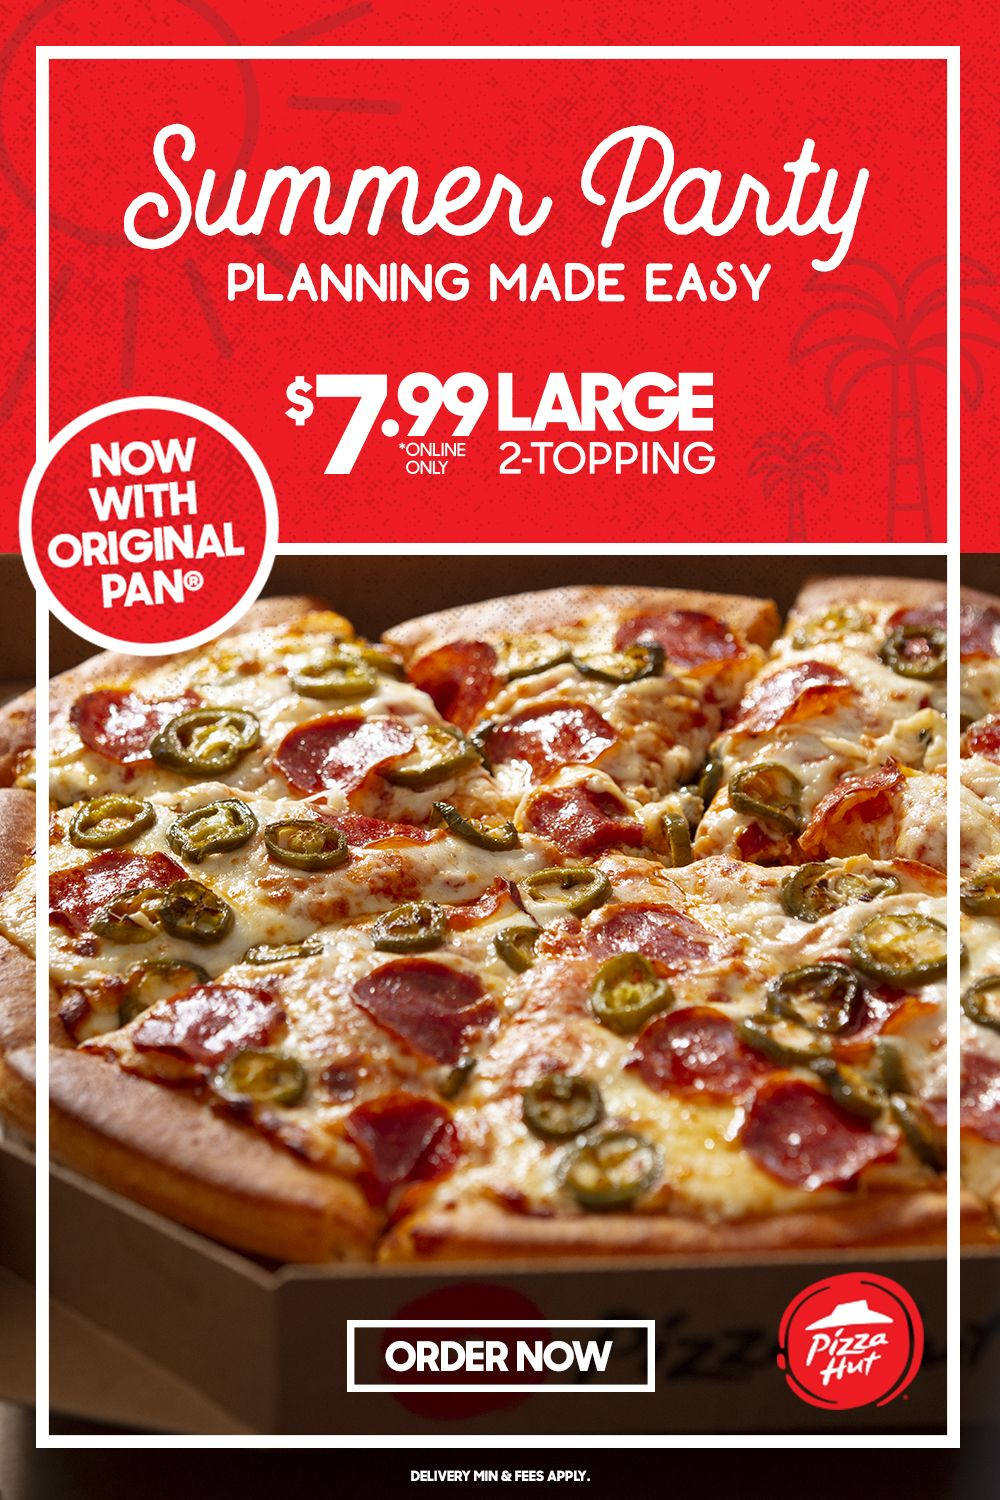 8a9ec54a1f283d5c28f5478401ac4ecc - Pizza Hut Com Online Application